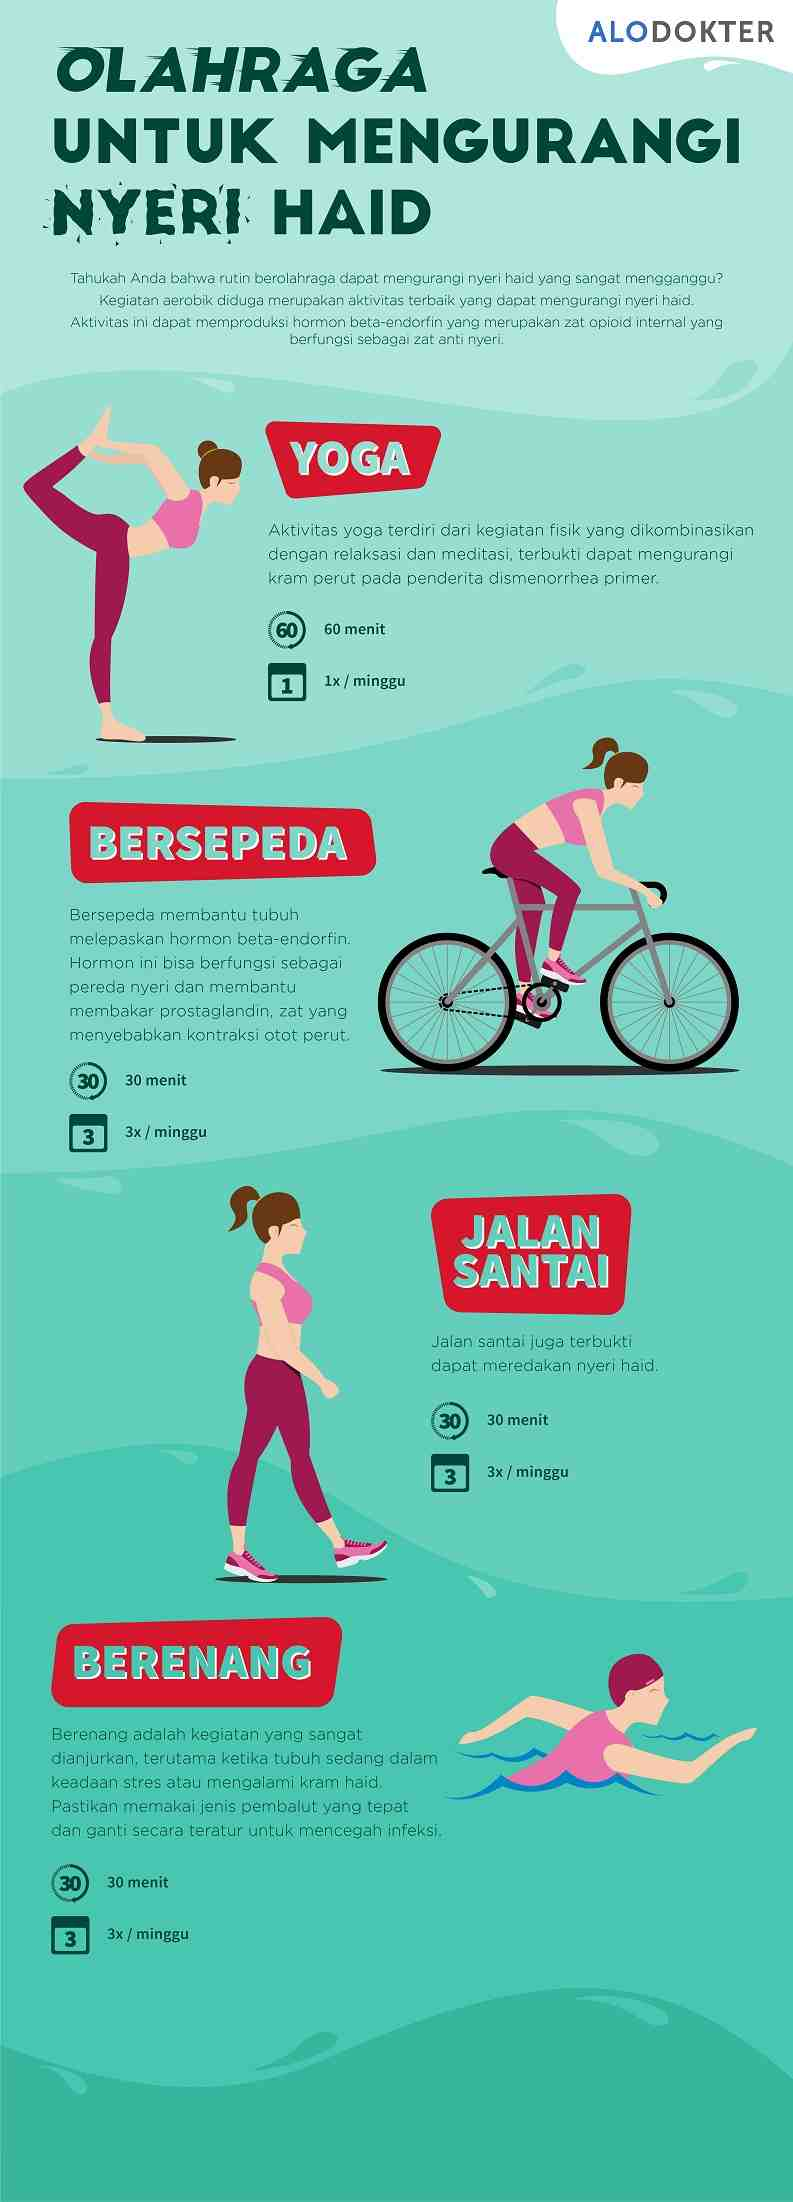 infografis feminax (take out) 2 - Alodokter